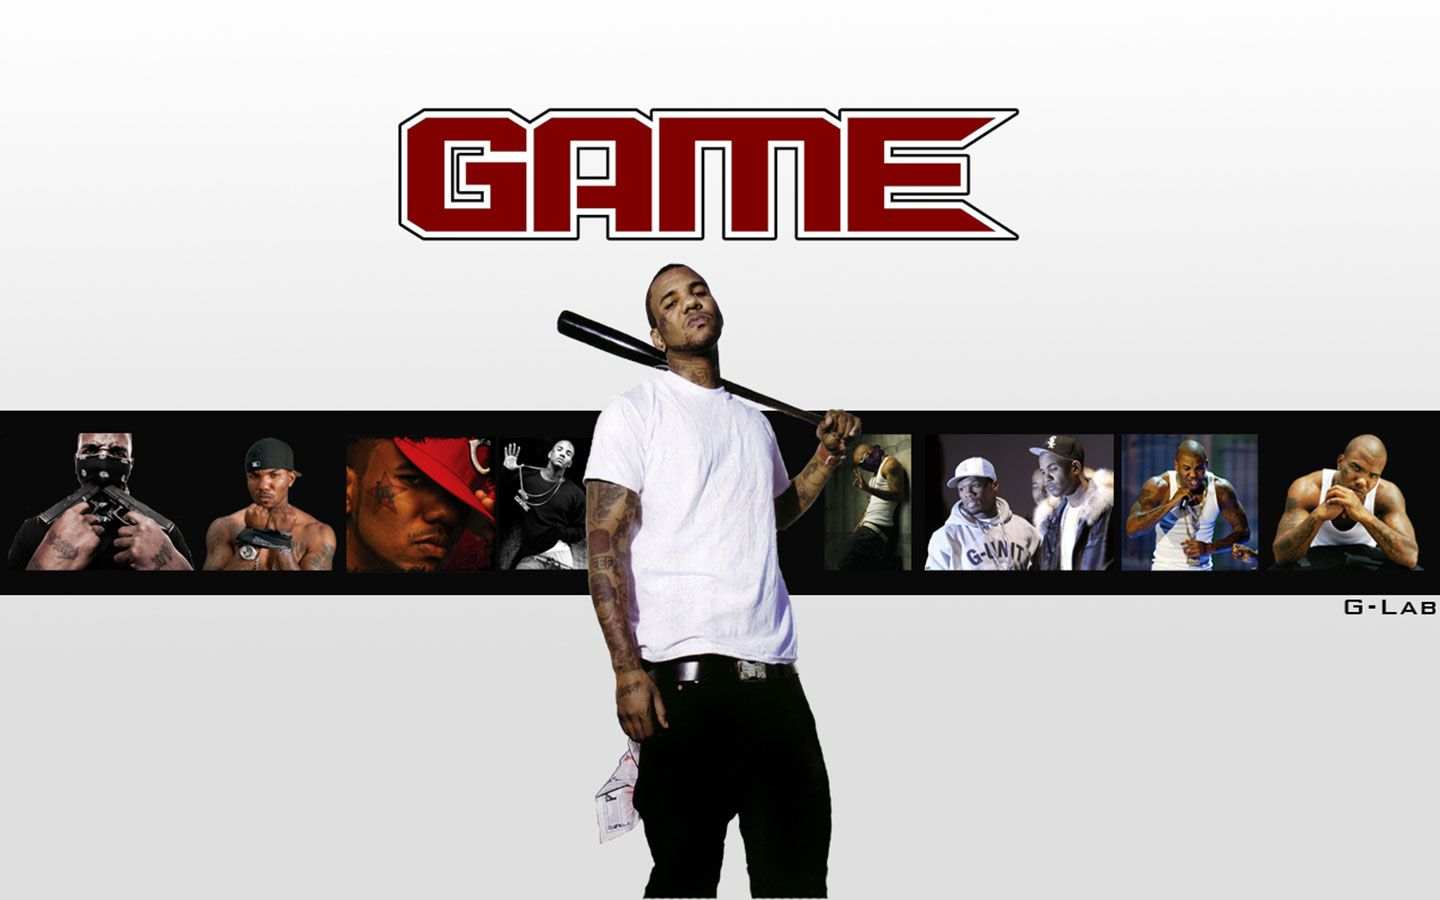 1440x900 37 stocks at The Game Wallpapers group